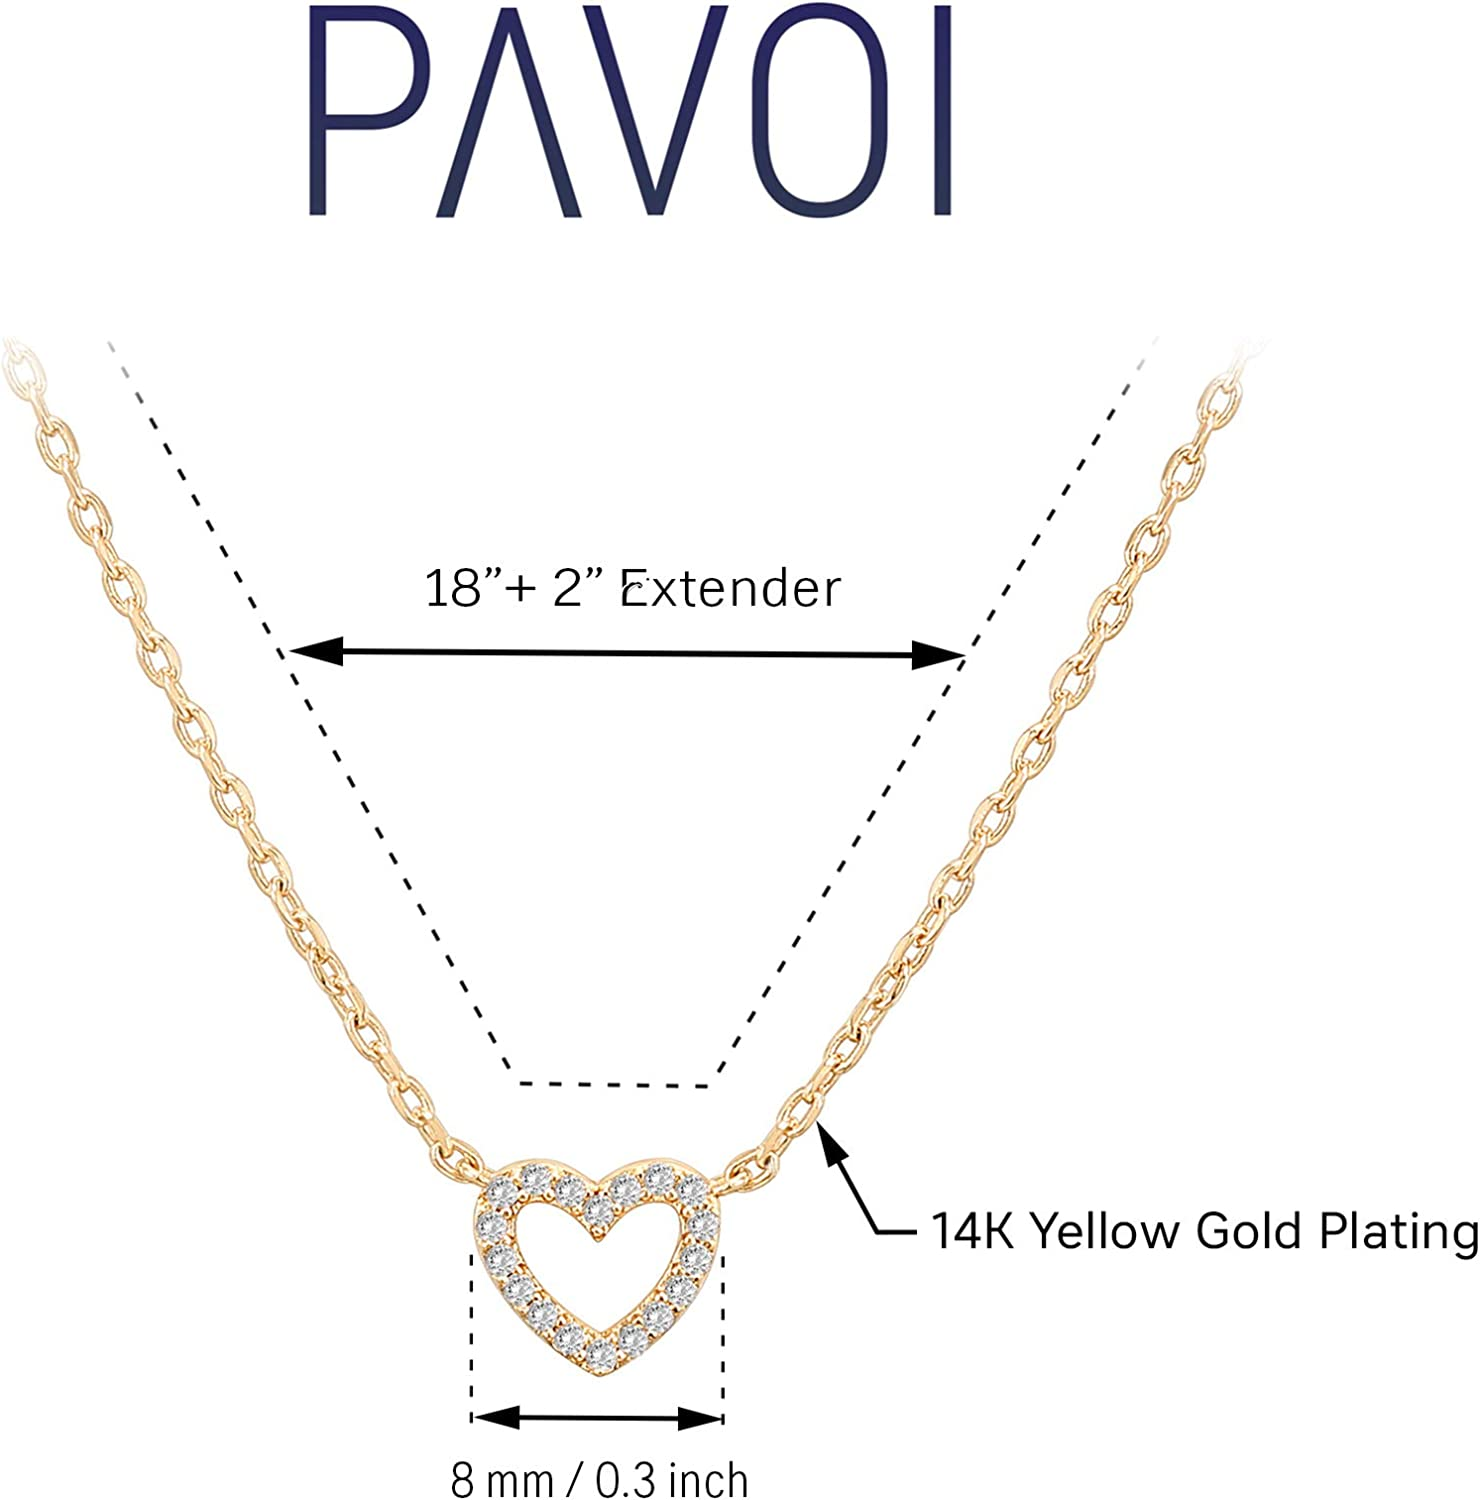 PAVOI 14K Gold Plated Heart Pendant Layered Necklaces Gold Necklaces for Women 18 Length with a 2 Extension